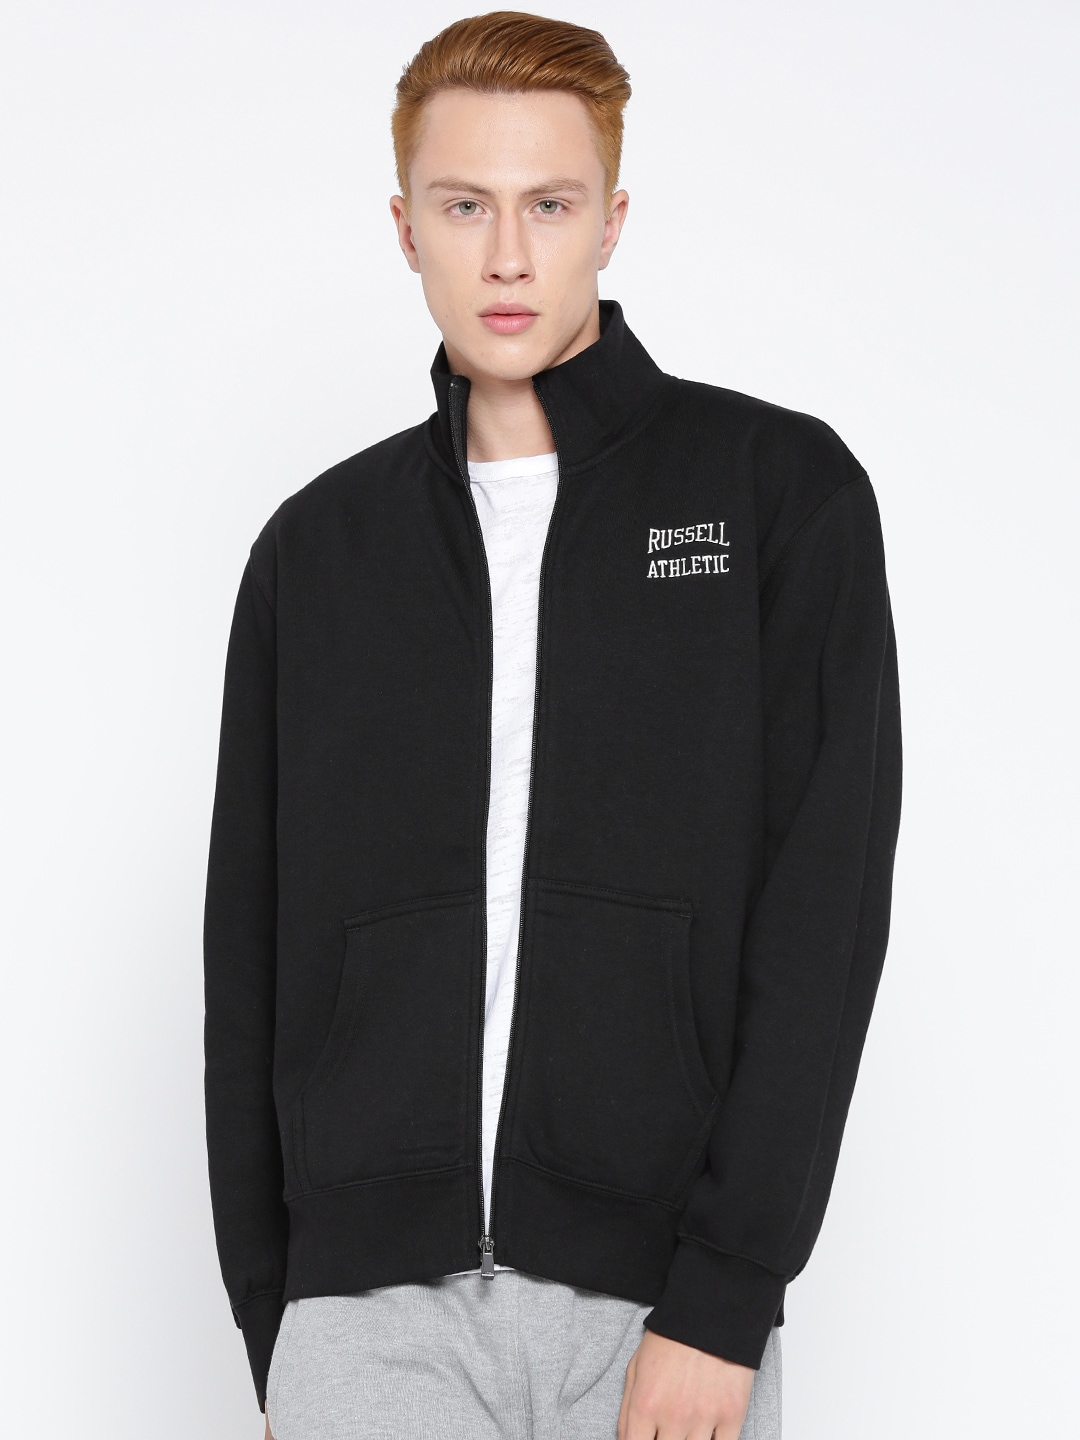 Russell Athletic Black Sweatshirt image